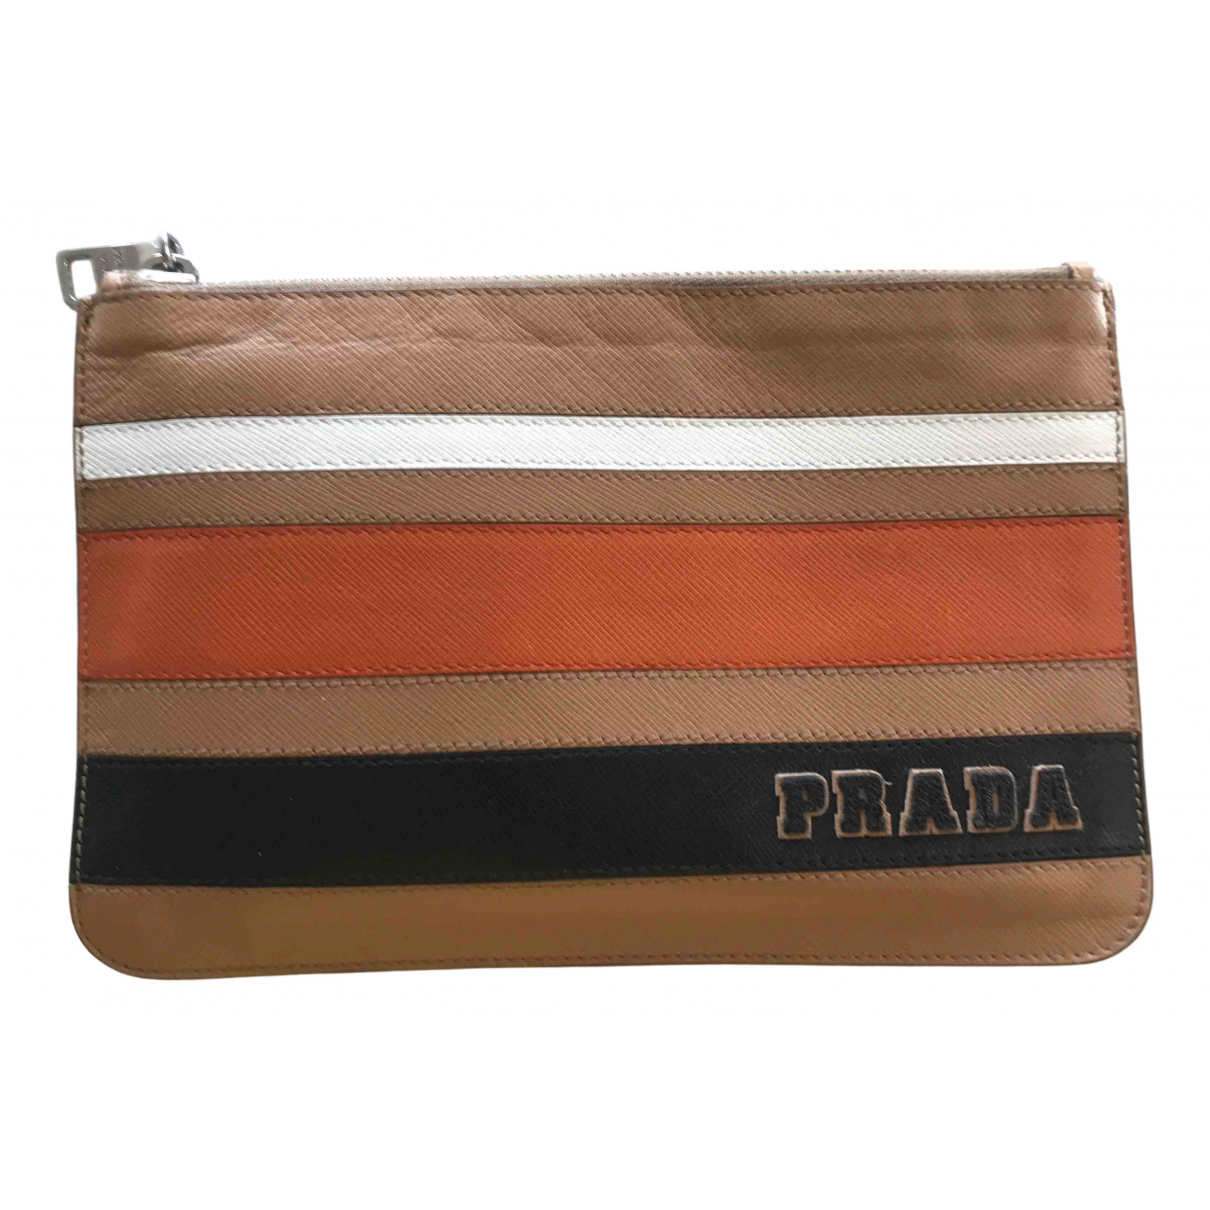 Prada N Camel Leather Purses, wallet & cases for Women N